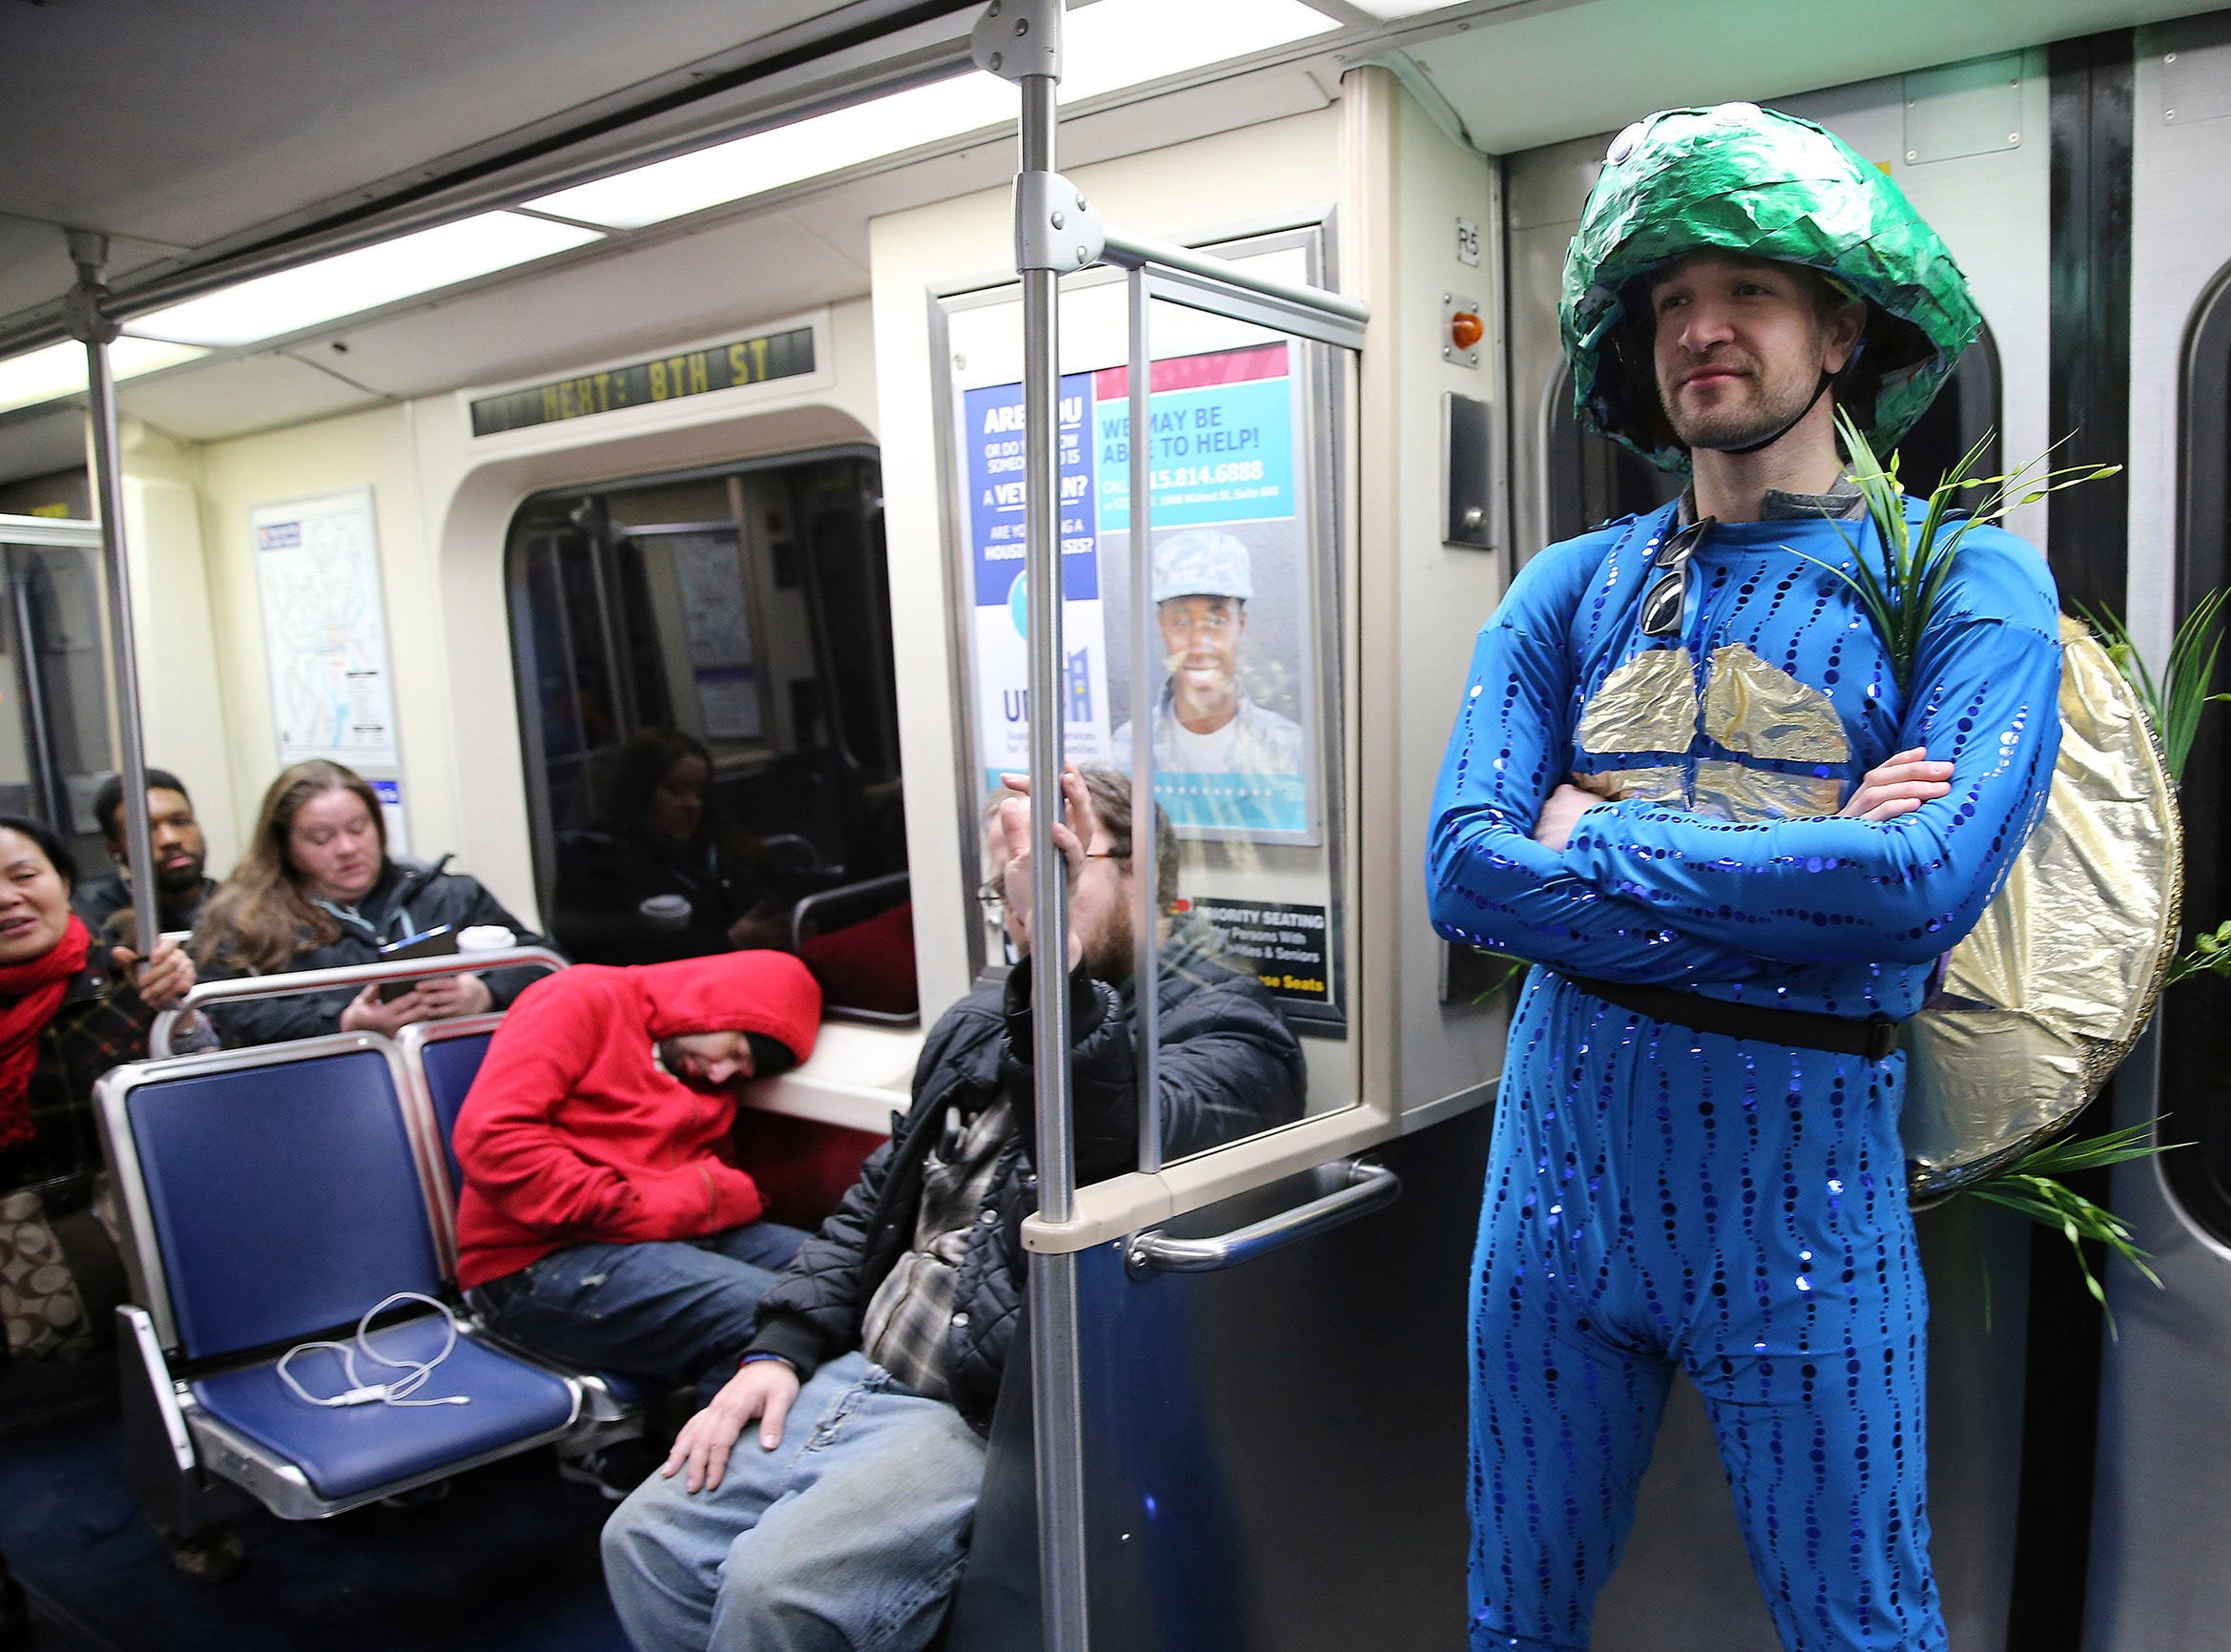 Drew Krause, a member of the Vaudevillians, rides the El to get his makeup for the Mummers Parade, Tuesday, Jan. 1, 2019, in Philadelphia. (David Maialetti/The Philadelphia Inquirer via AP)